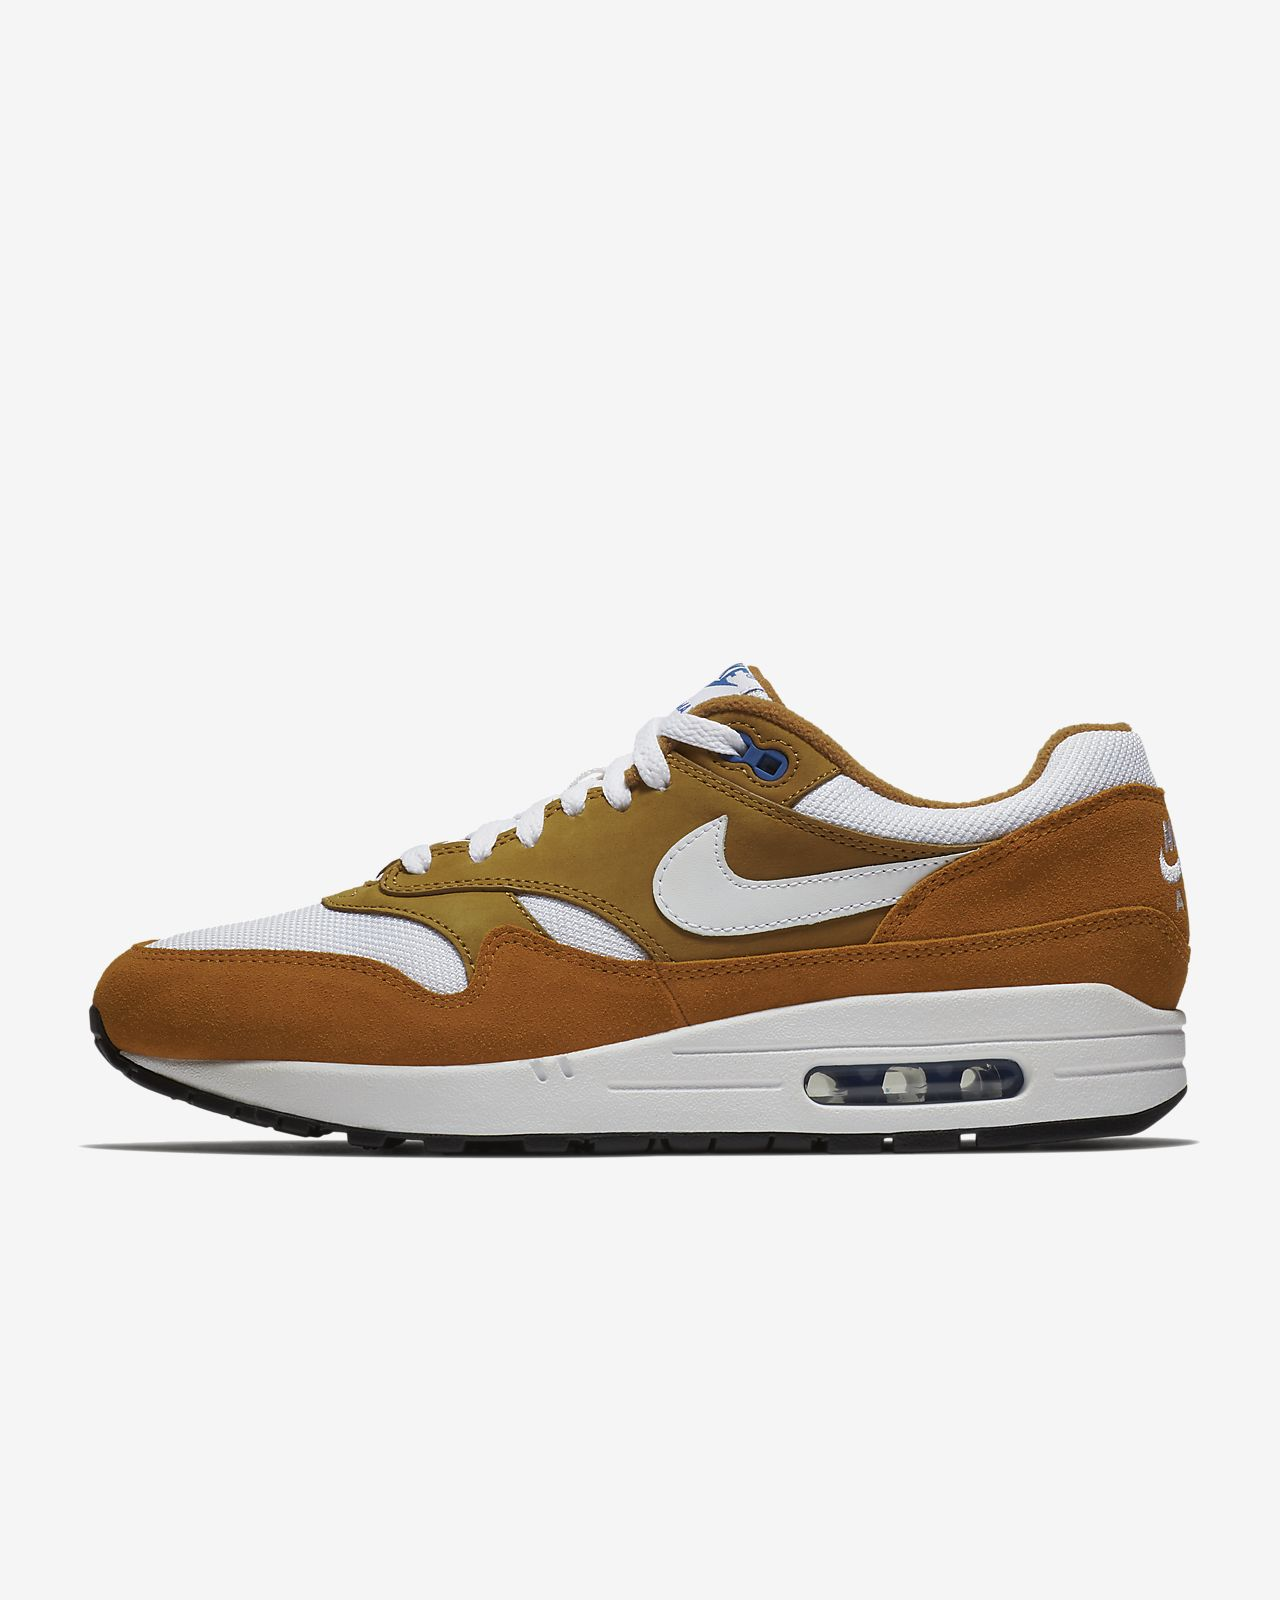 Nike Air Max 1 Premium Retro Mens Shoe